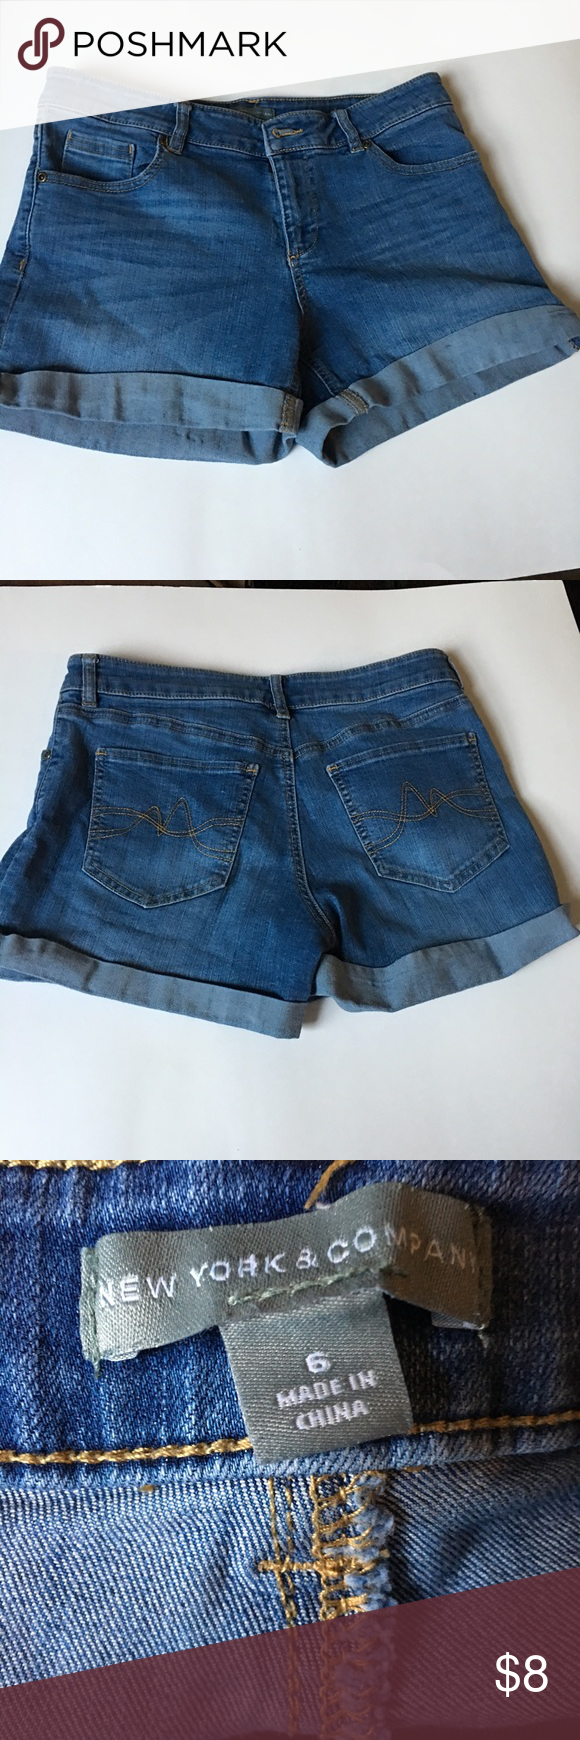 ✅2 for $15 New York & Co Denim Jean Shorts Excellent condition. No tears, stains or marks. Combine with any item with a ✅ for a $15 bundle or add three more items for 30% Off Bundles. New York & Company Shorts Jean Shorts